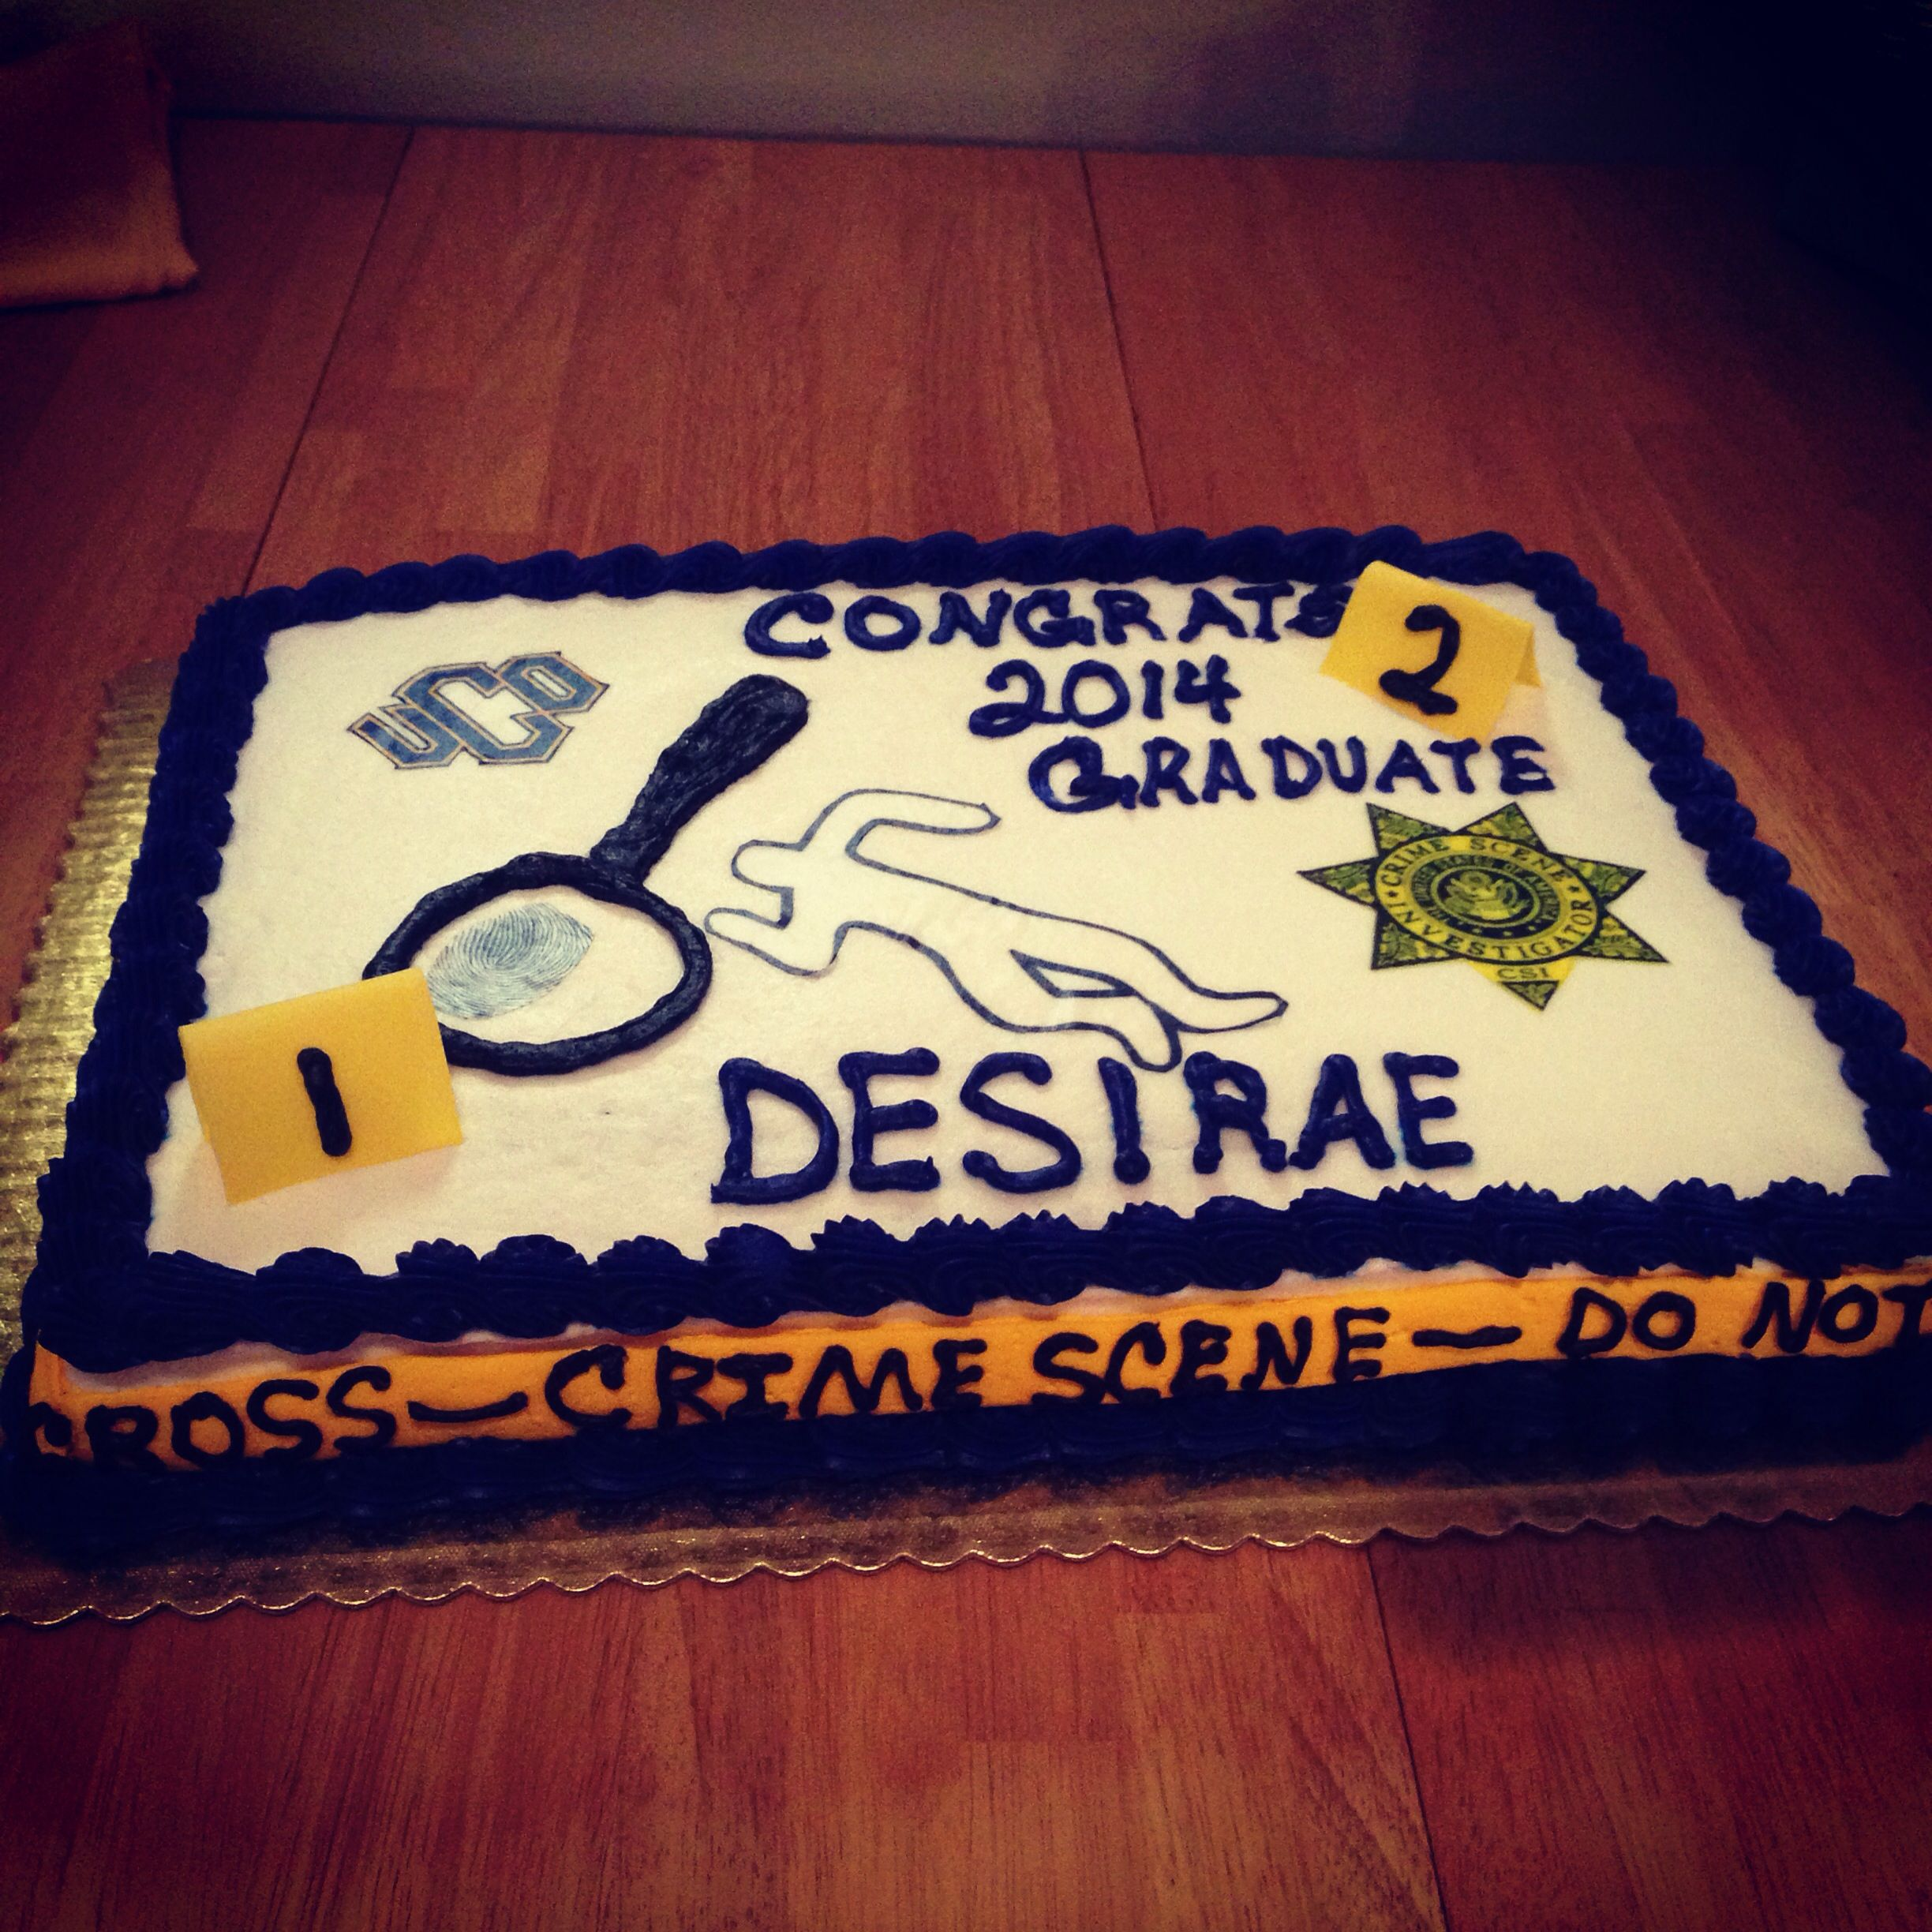 Cake Decorating Career forensic science themed graduation cake. | graduation ideas